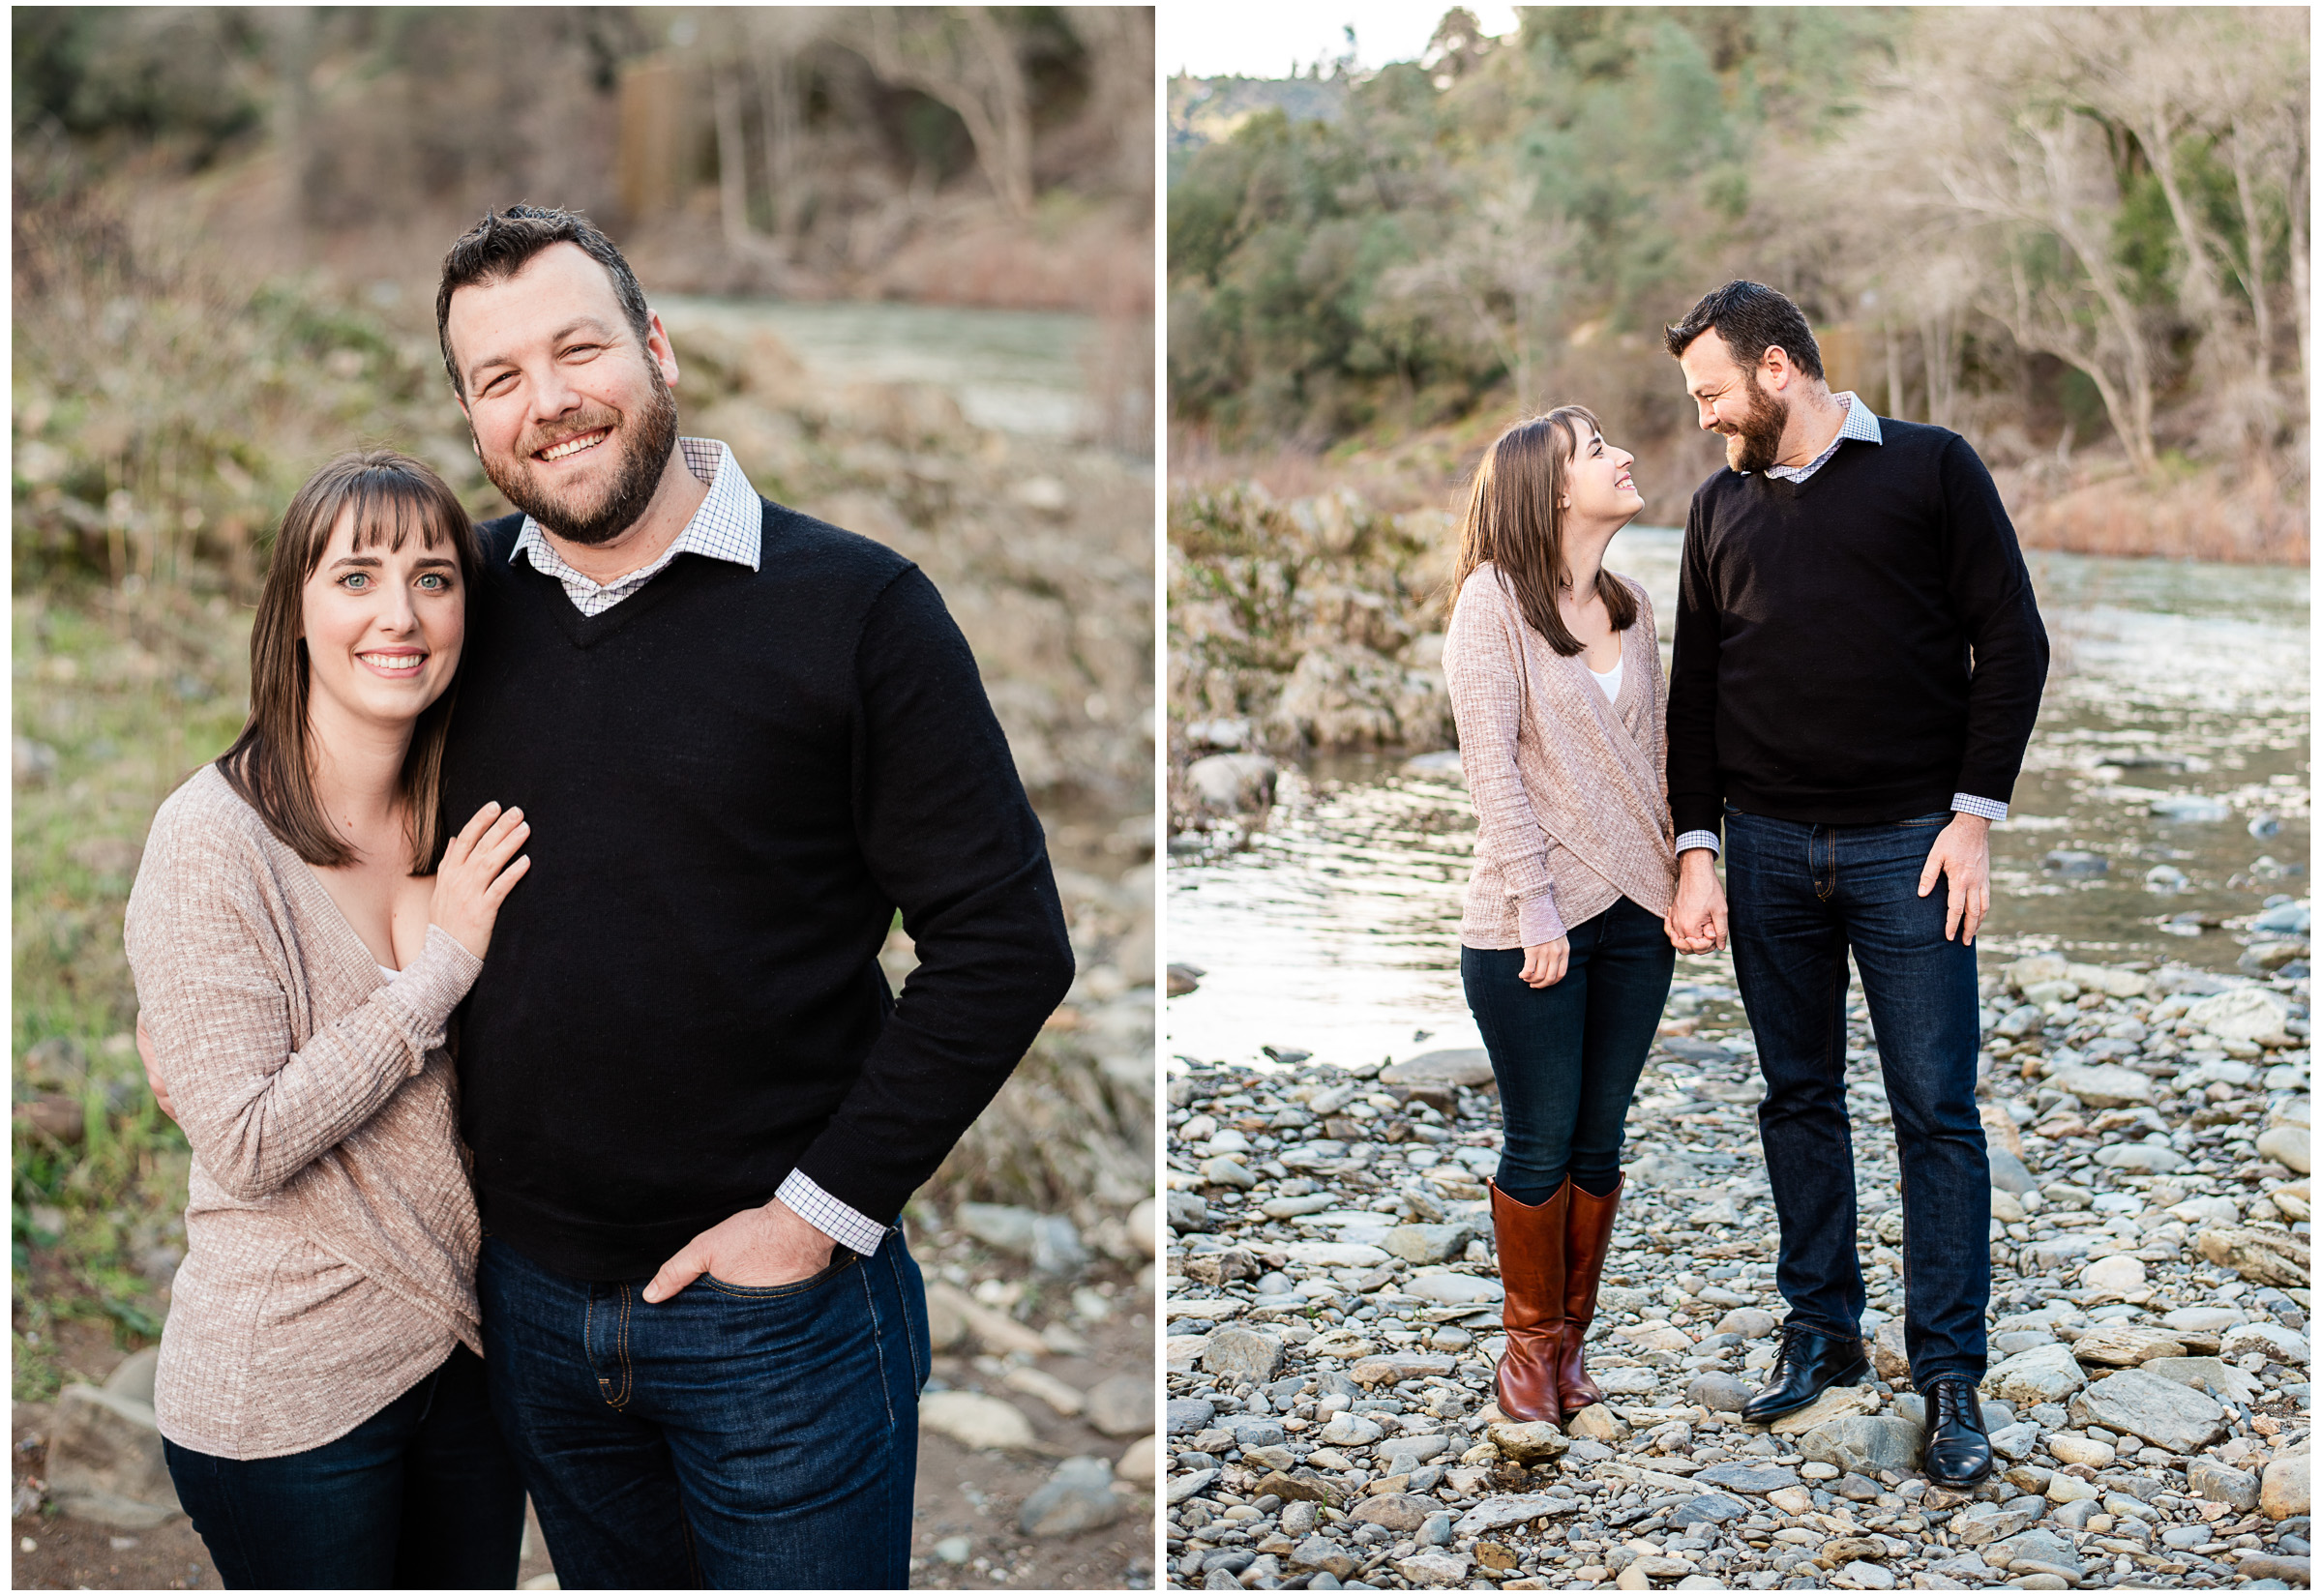 Auburn Engagement Session - Sacramento Photographer - Justin Wilcox Photography - 2.jpg